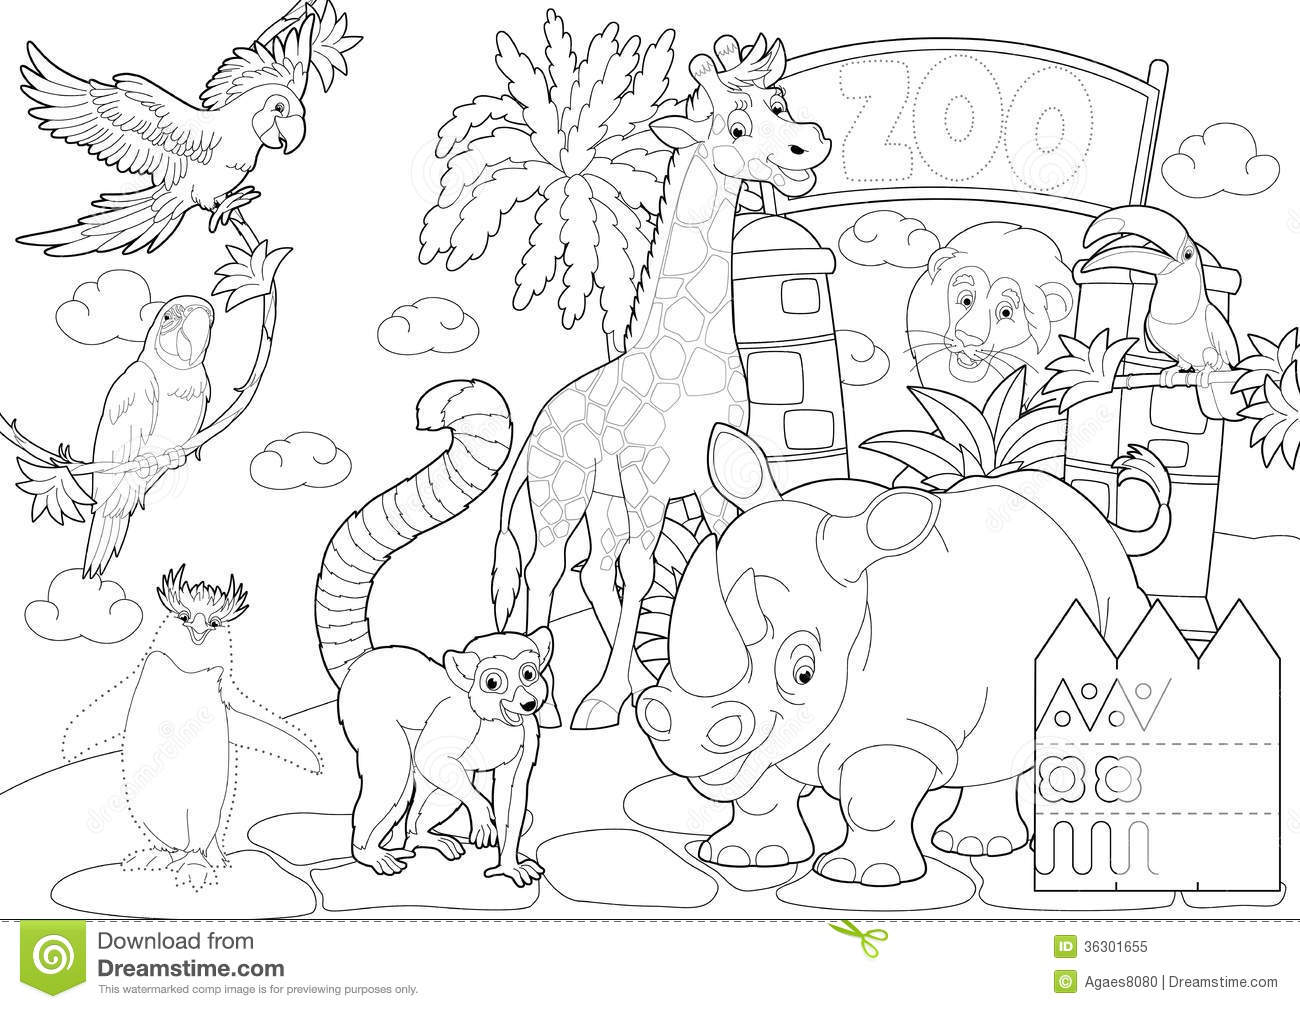 Coloring Page - The Zoo - Illustration For The Children Royalty ...